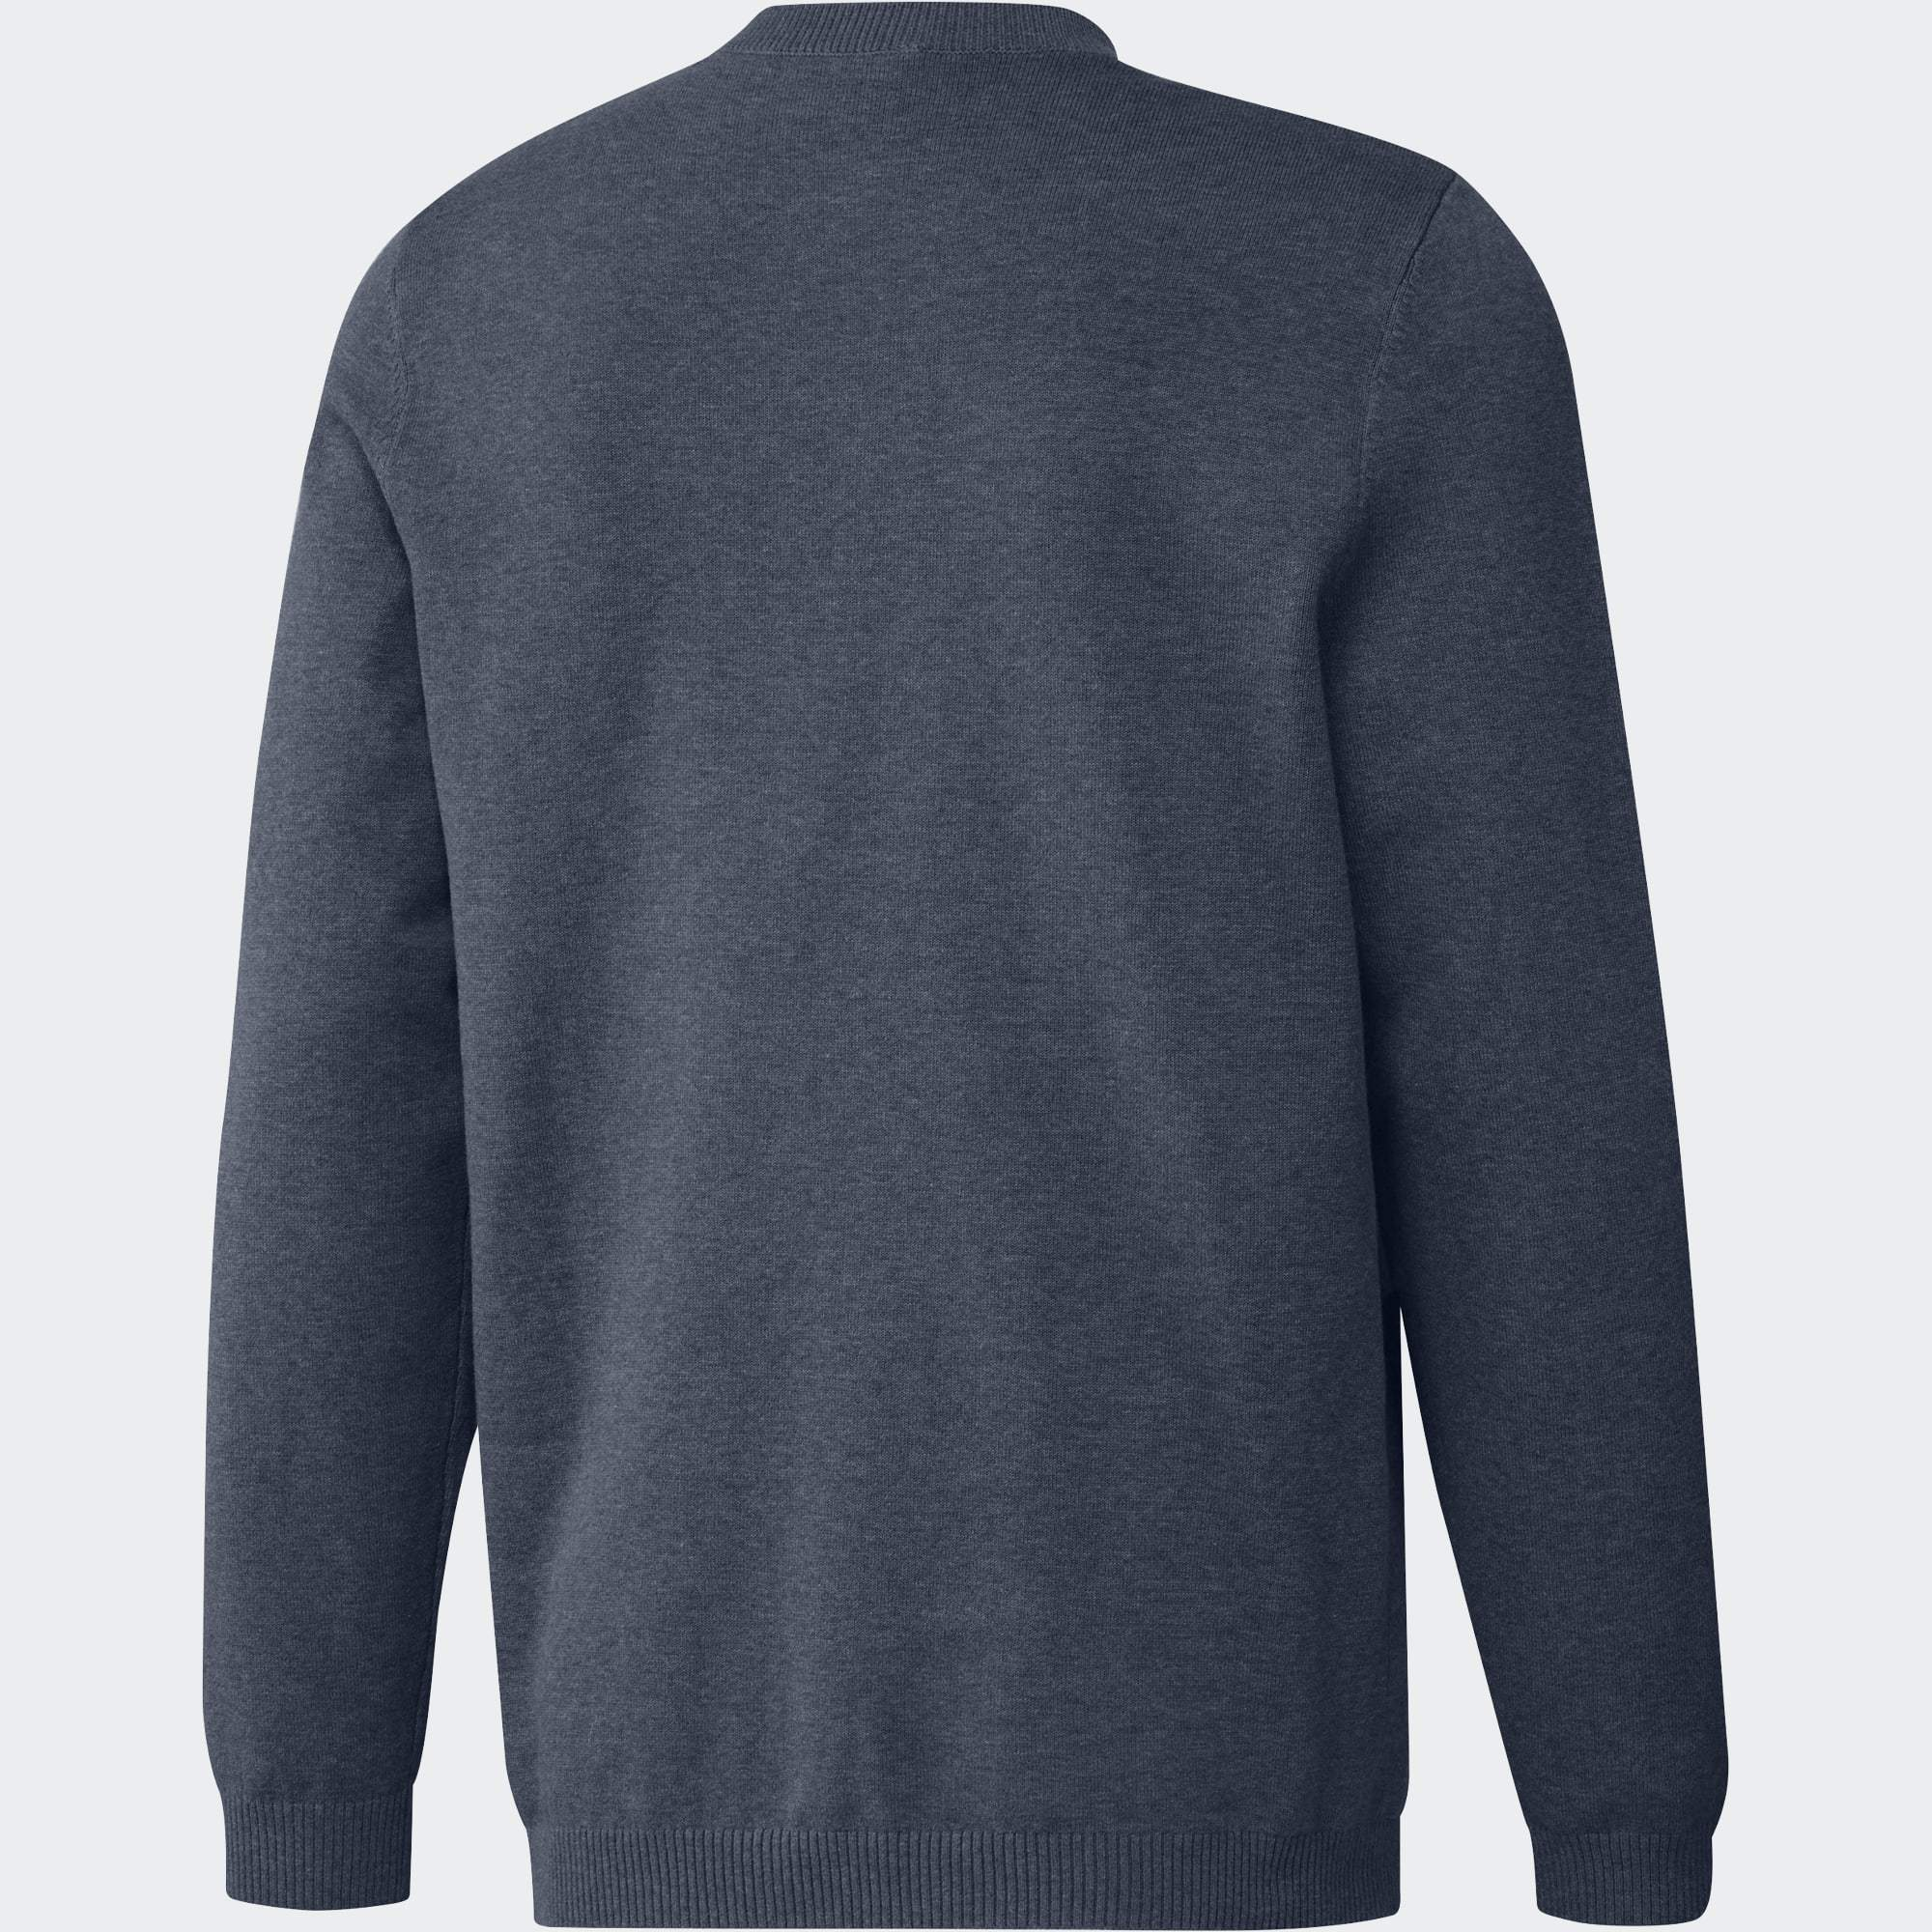 ADIDAS CREW NECK GOLF SWEATER ADIDAS MENS SWEATERS ADIDAS